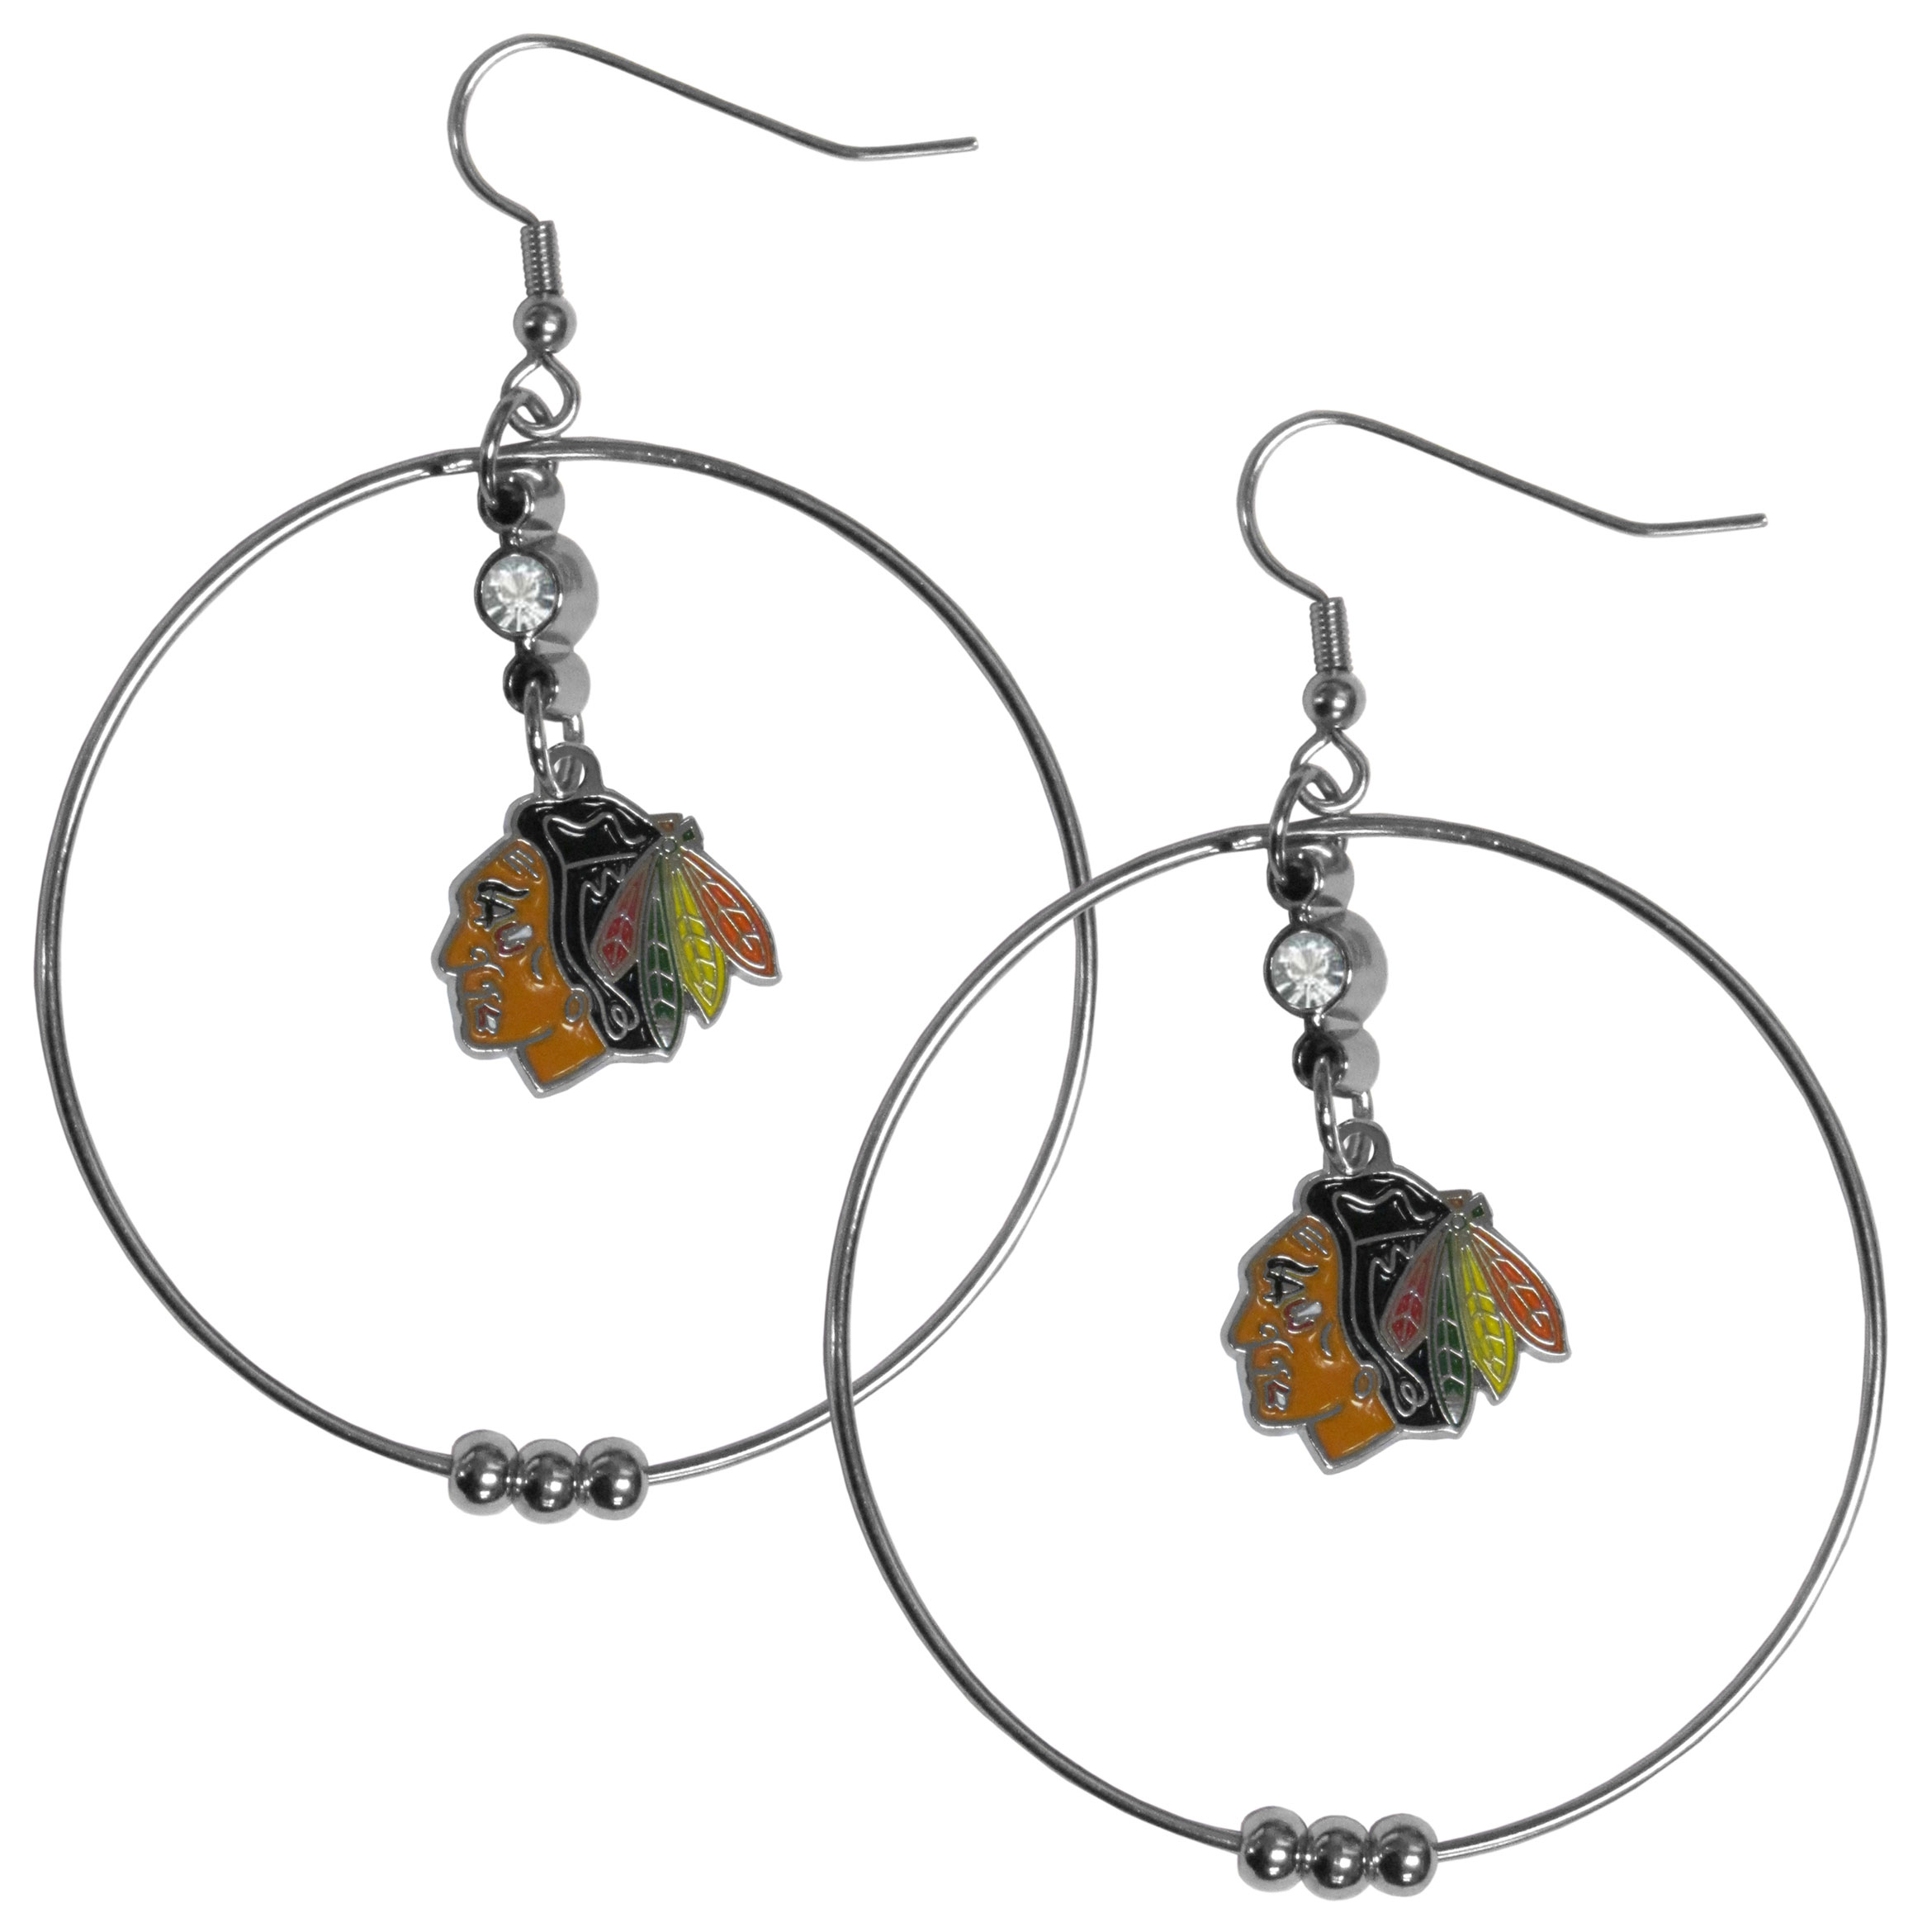 Chicago Blackhawks® 2 Inch Hoop Earrings - Our large hoop earrings have a fully cast and enameled Chicago Blackhawks® charm with enameled detail and a high polish nickel free chrome finish and rhinestone access. Hypoallergenic fishhook posts.